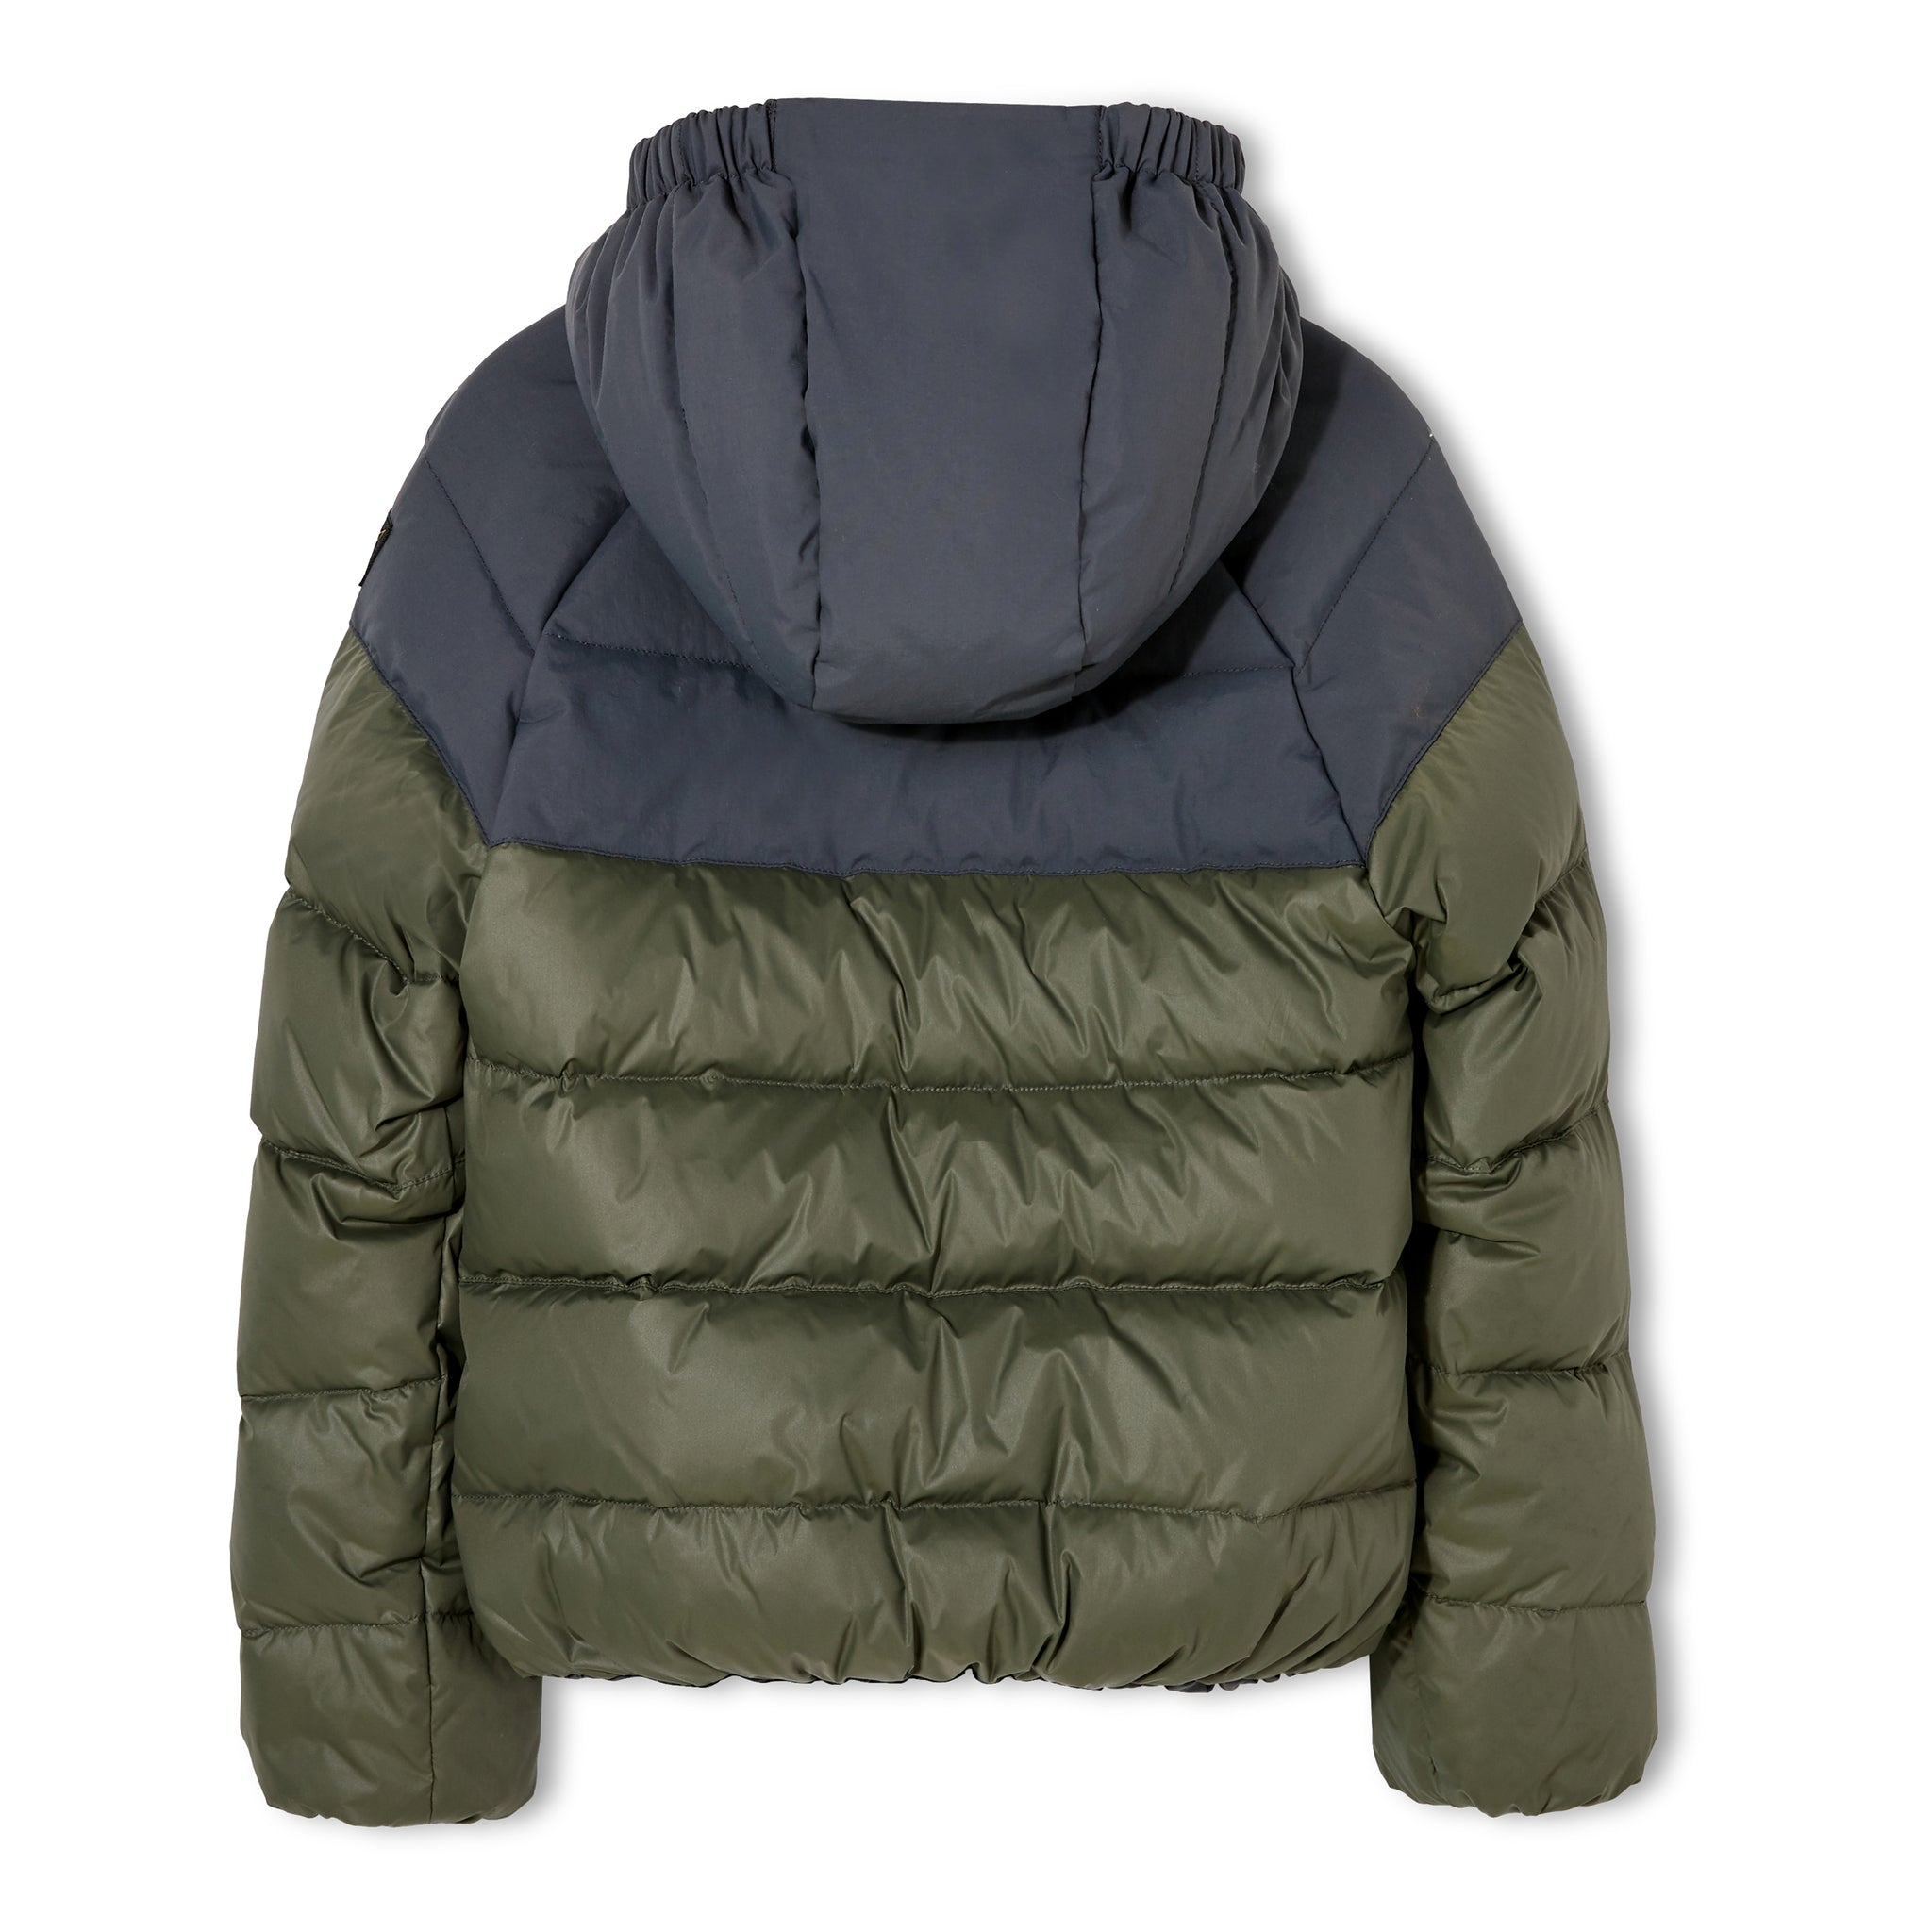 SNOWSCOUT Ash Black - Reversible Down Jacket 3